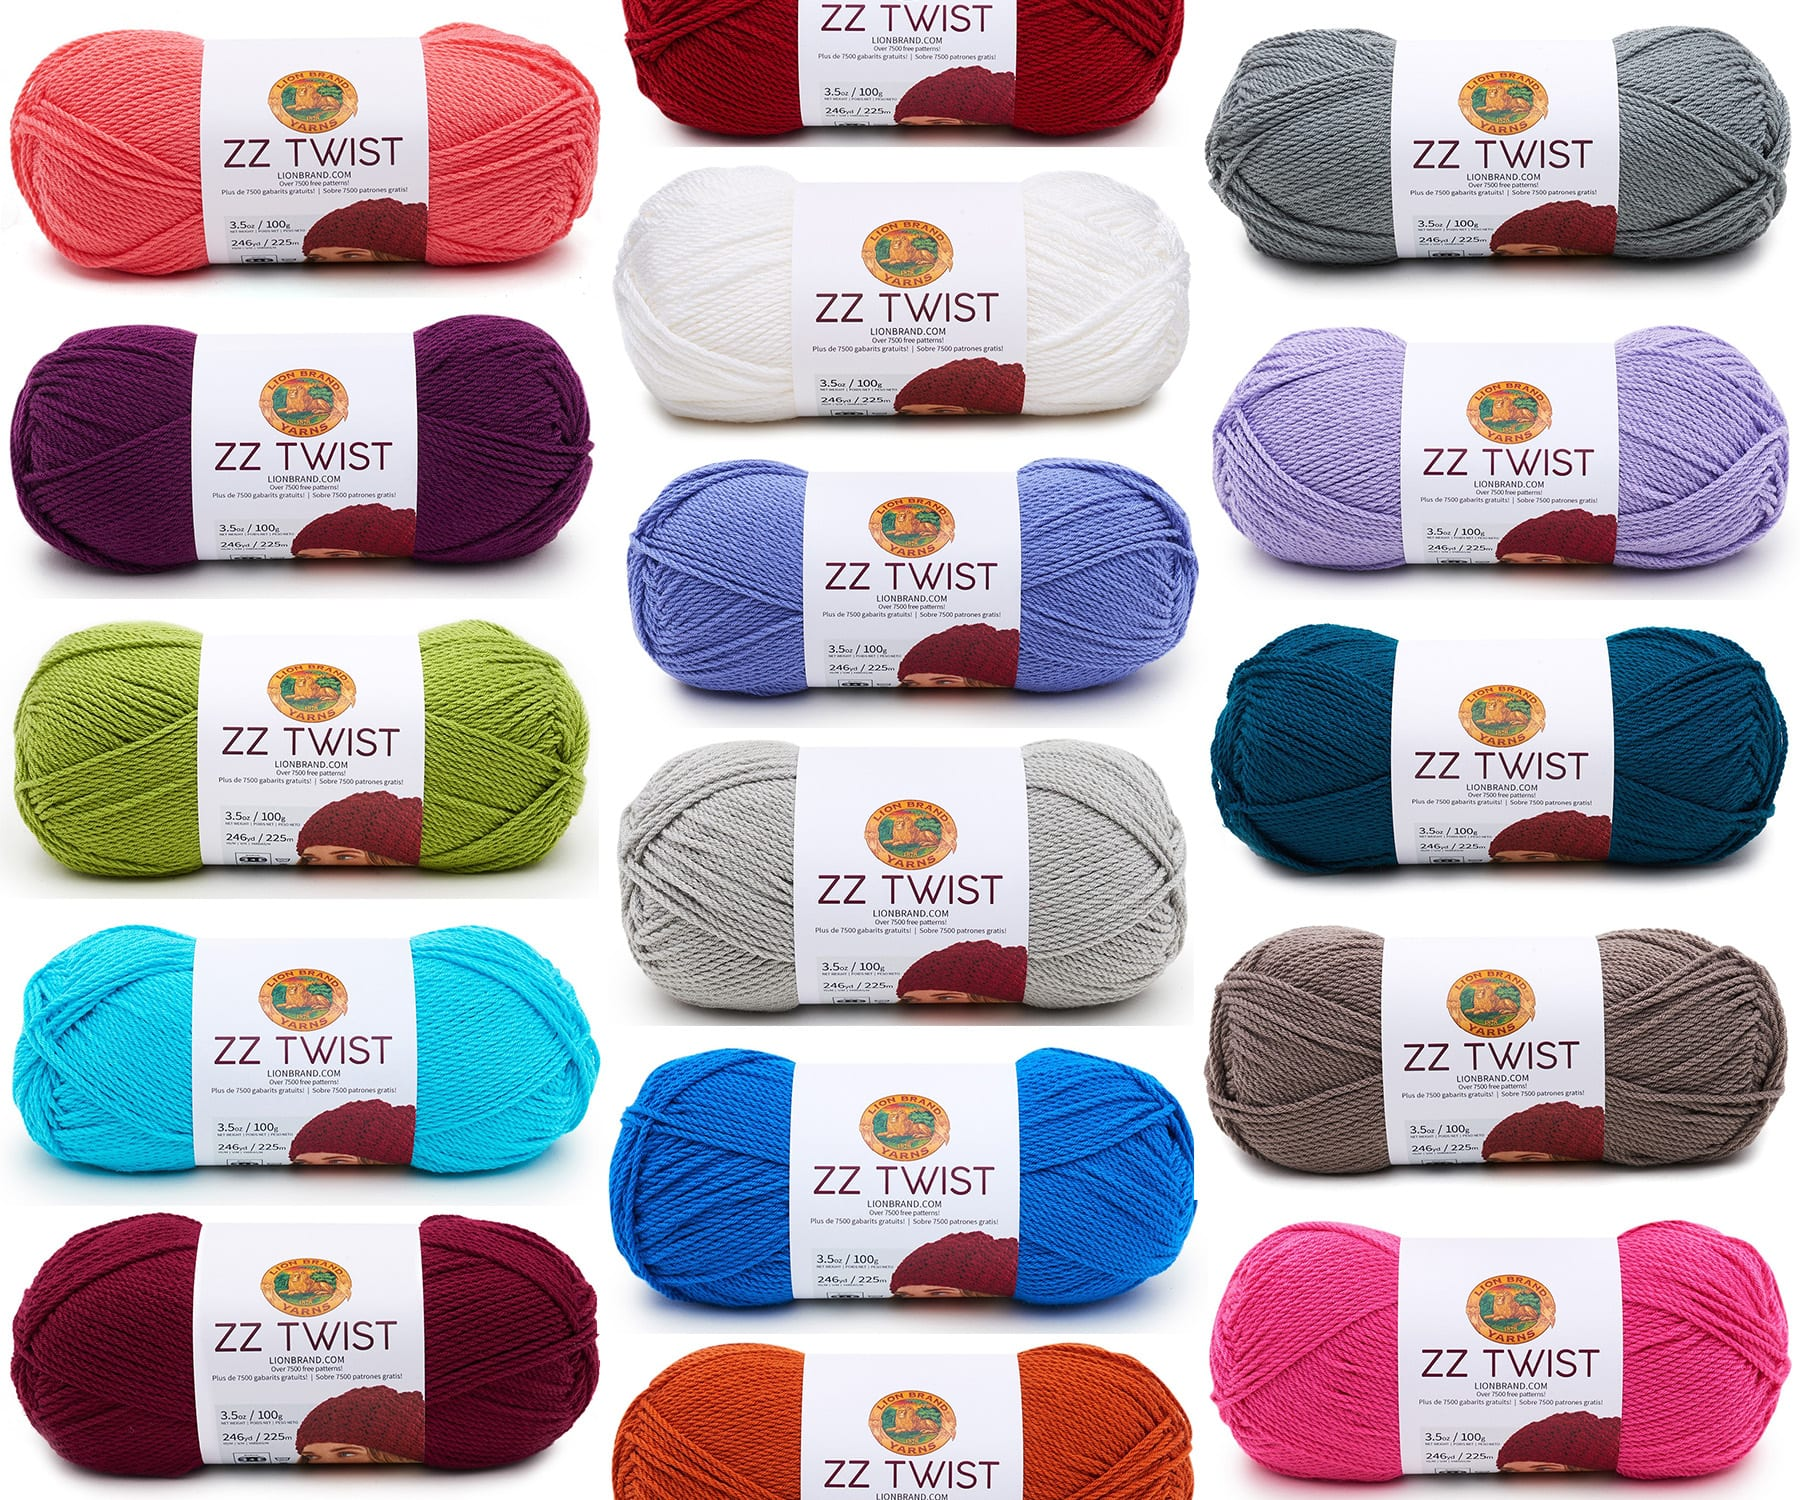 Lion Brands Zz Twist Yarn For Crocheters Knitters Sewrella